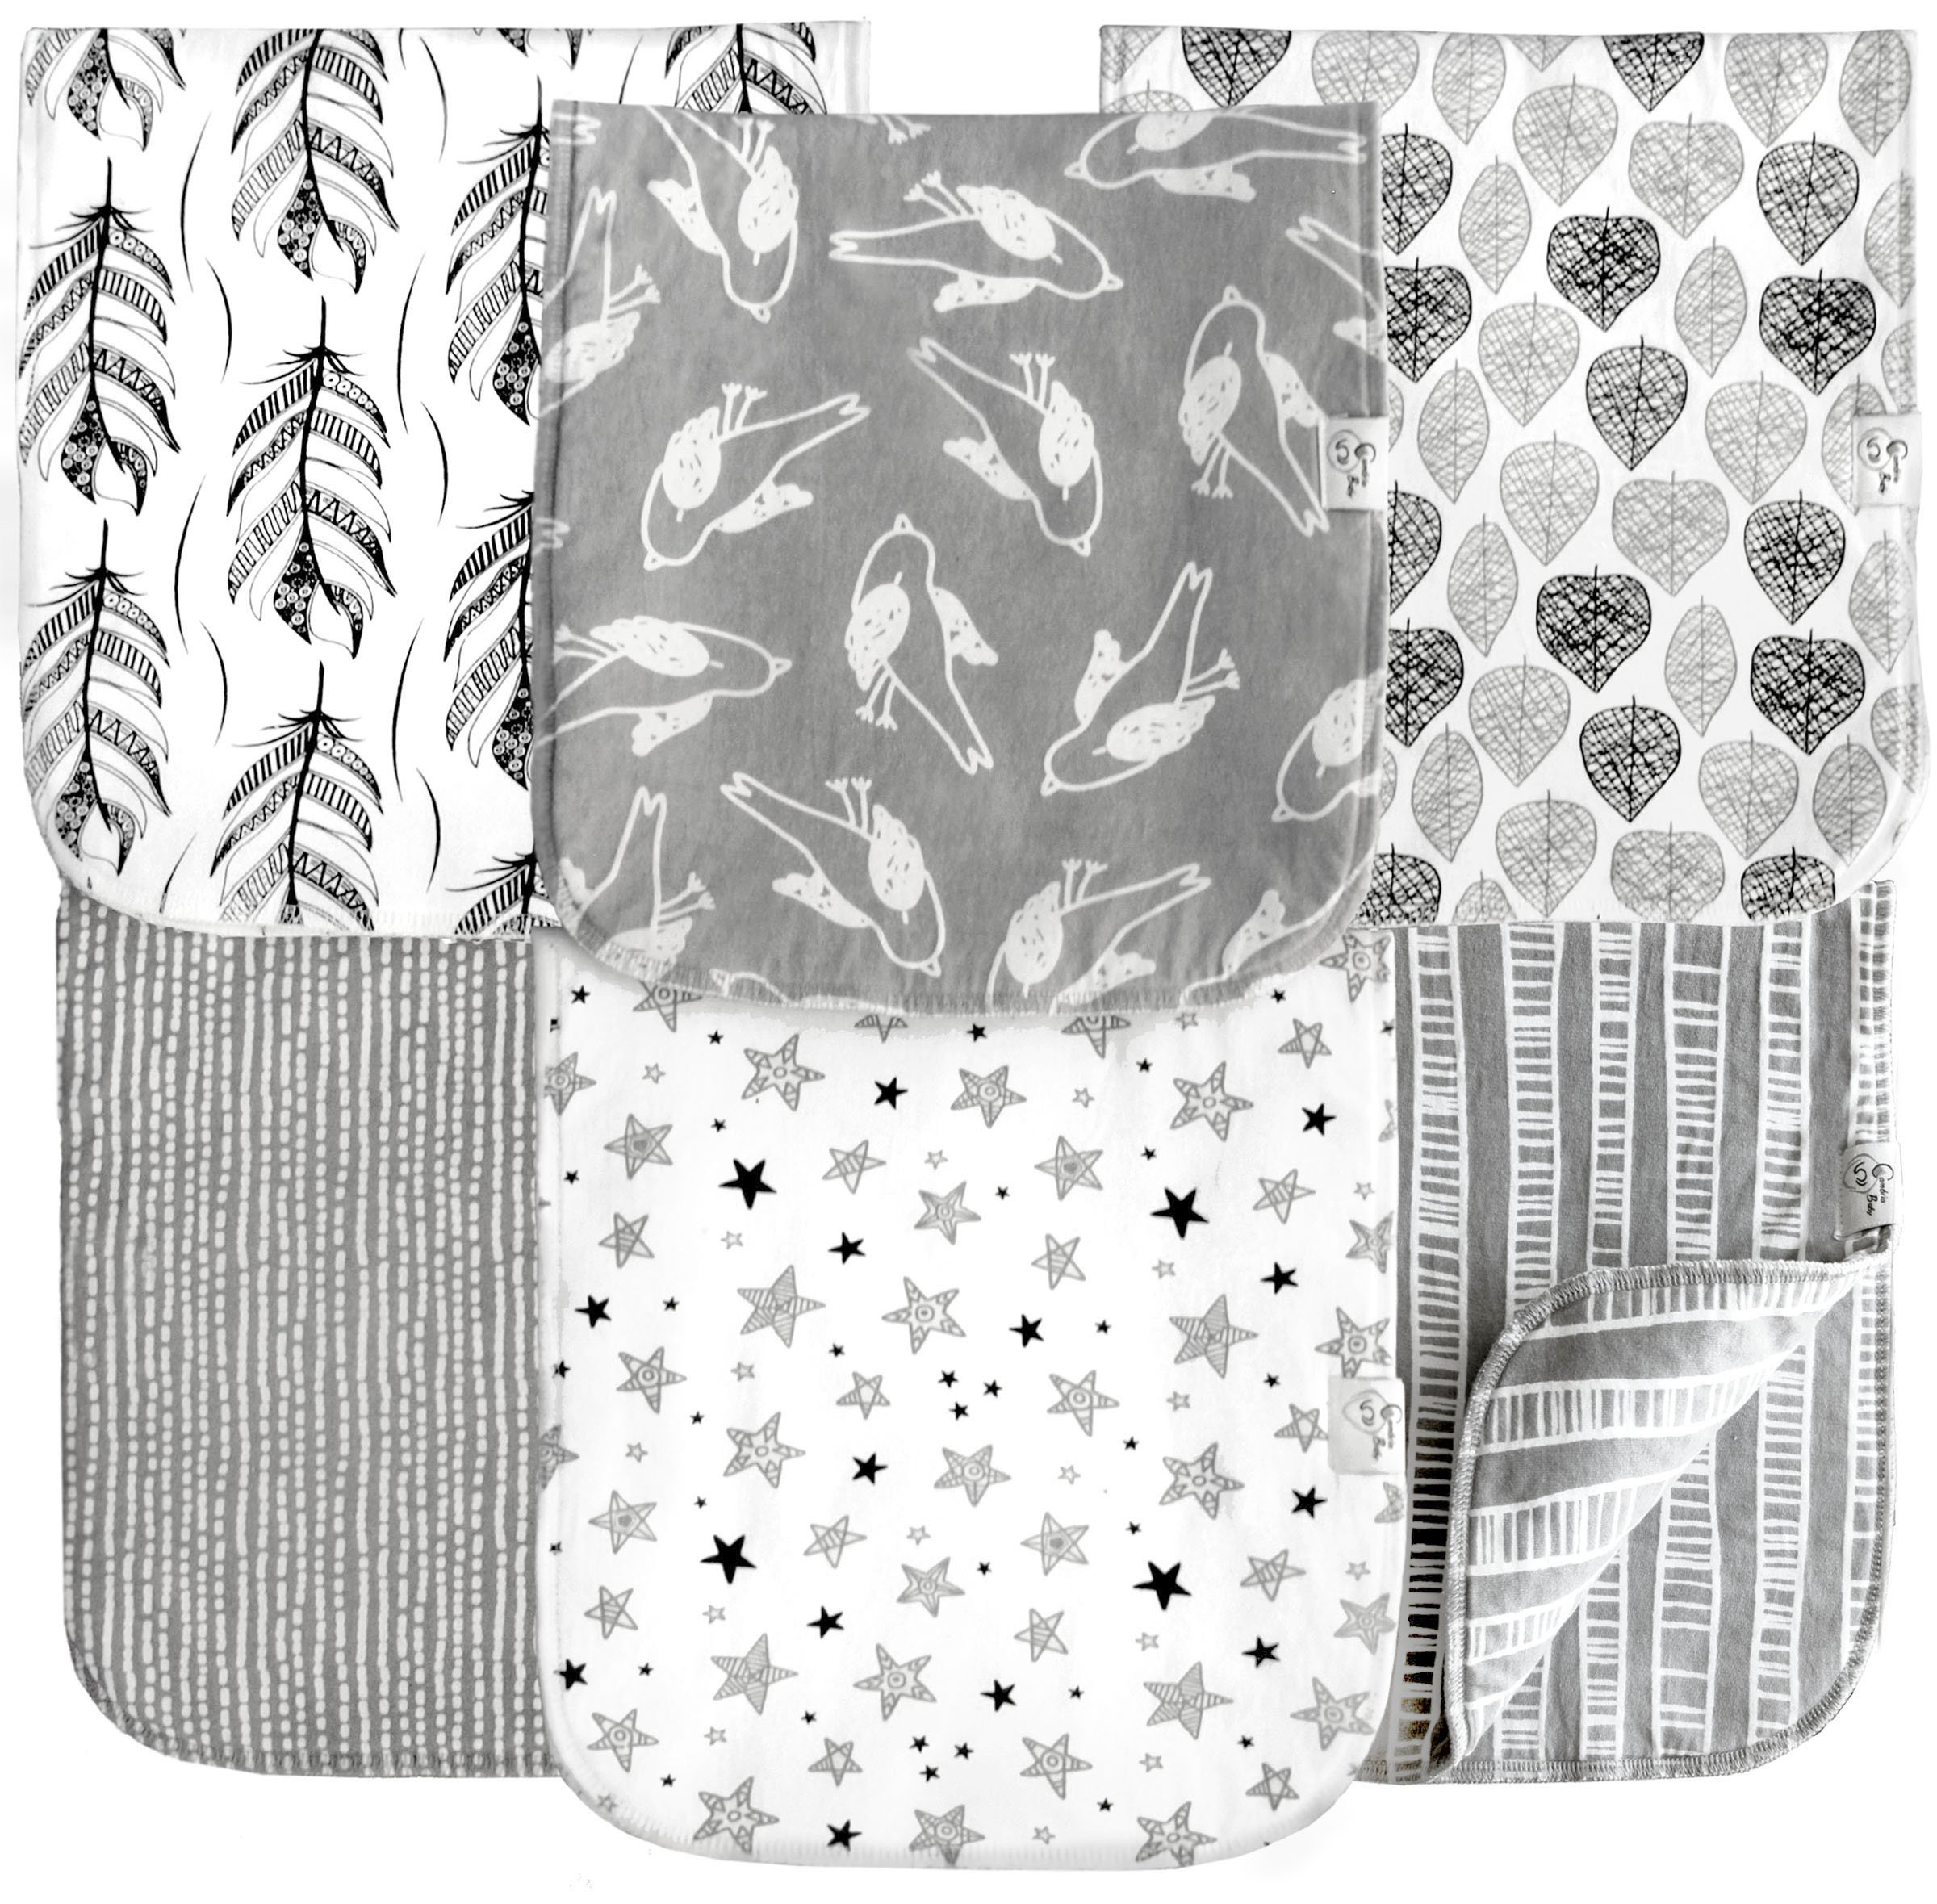 6 Pack Extra Large Organic Cotton Burp Cloths, Unisex, Reversible, with 3 Layer Inner Fleece Absorbency, 10''x22'', Neutral Patterns Boys and Girls